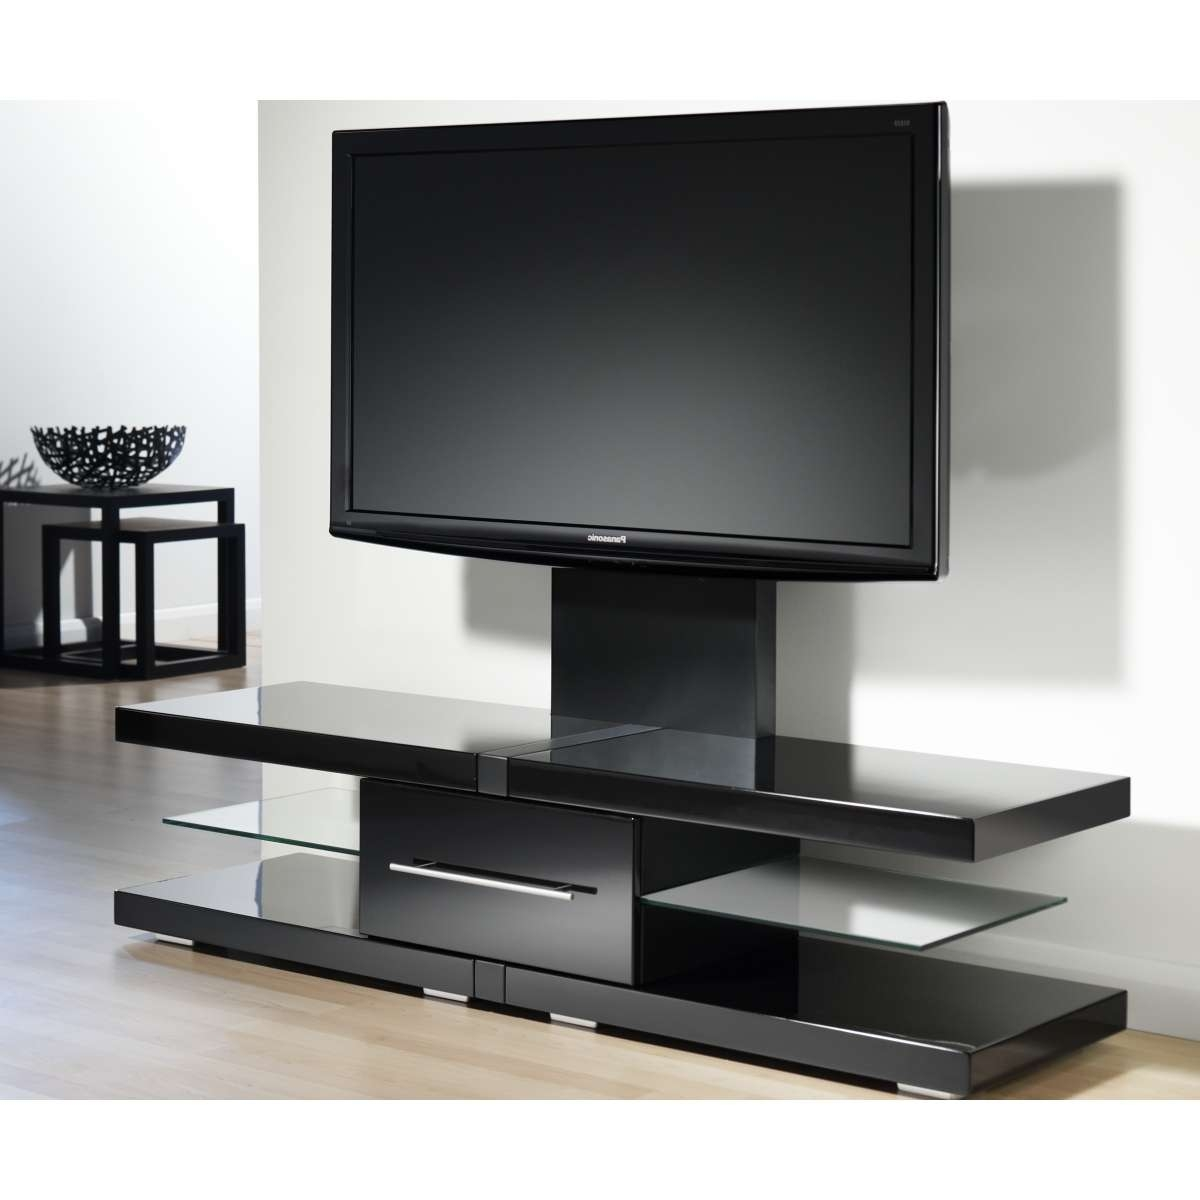 Modern Black Tone Wide Screen Tv Stand With Display Shelves And Intended For Modern Tv Stands For Flat Screens (View 10 of 15)